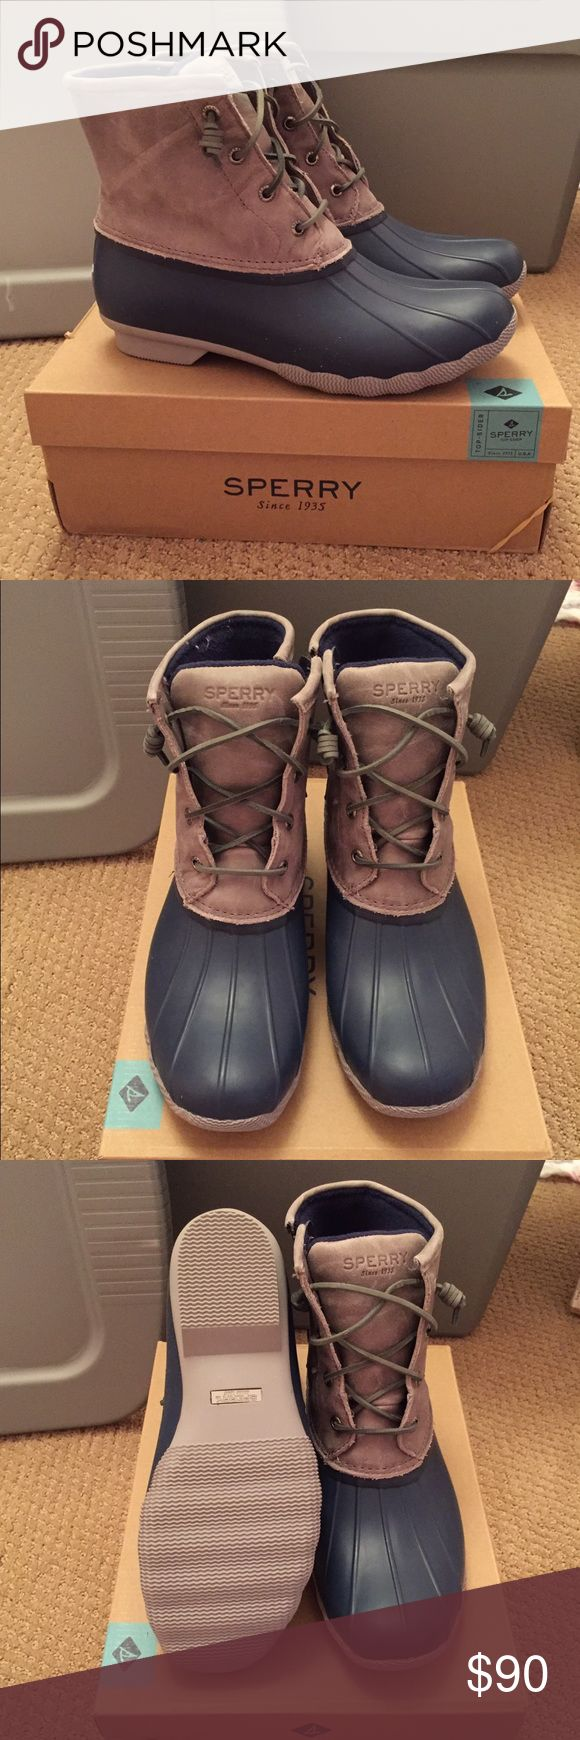 Sperry 'Saltwater' Duck Boot New in box! Sperry Saltwater Duck Boot, women's size 10. Navy and grey. Sperry Top-Sider Shoes Winter & Rain Boots